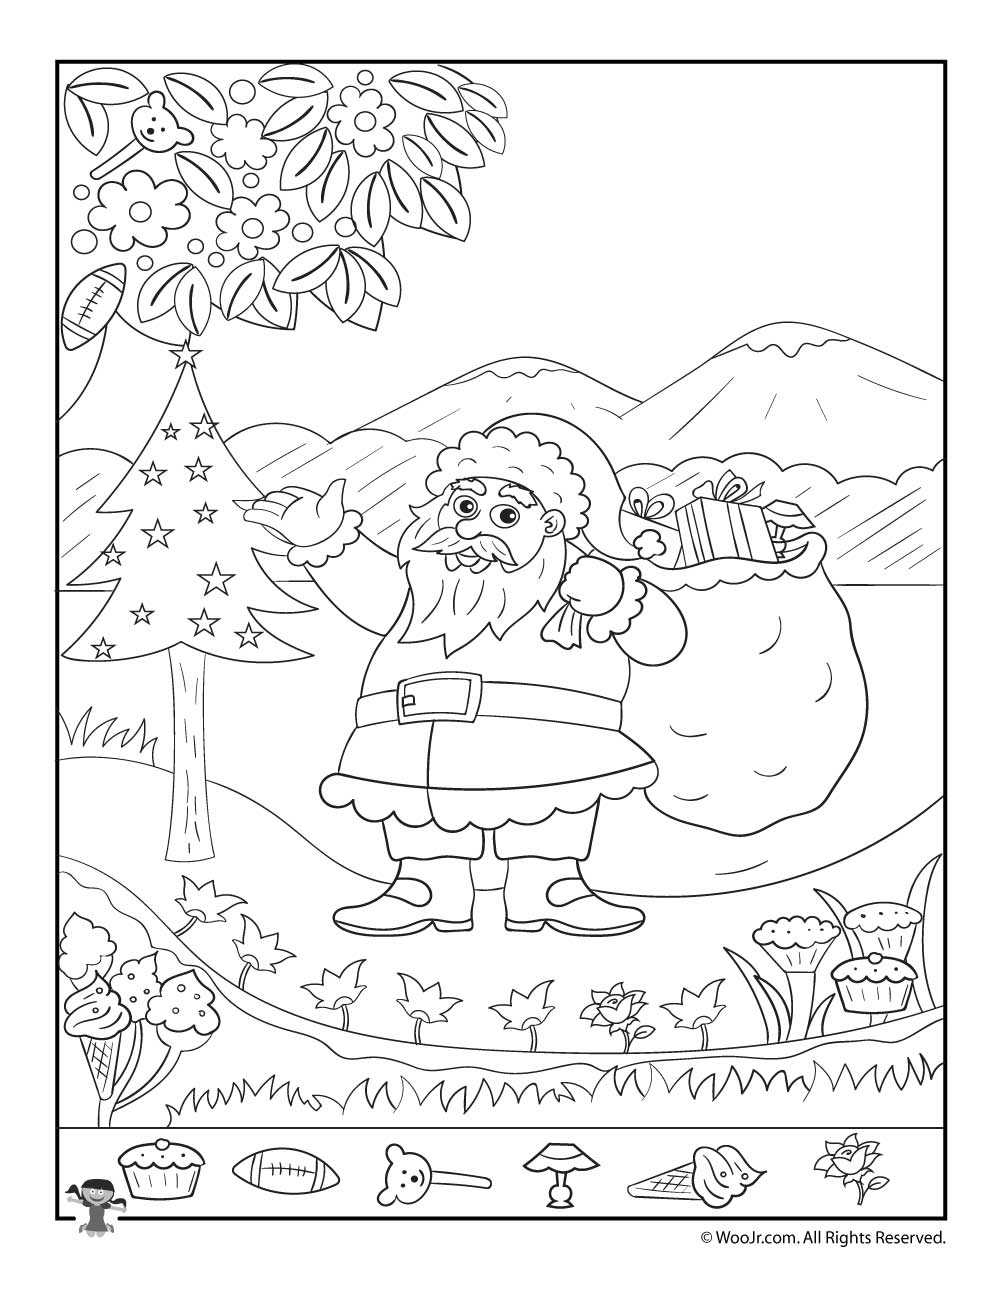 santa claus christmas hidden picture printable page - Hidden Pictures For Kids